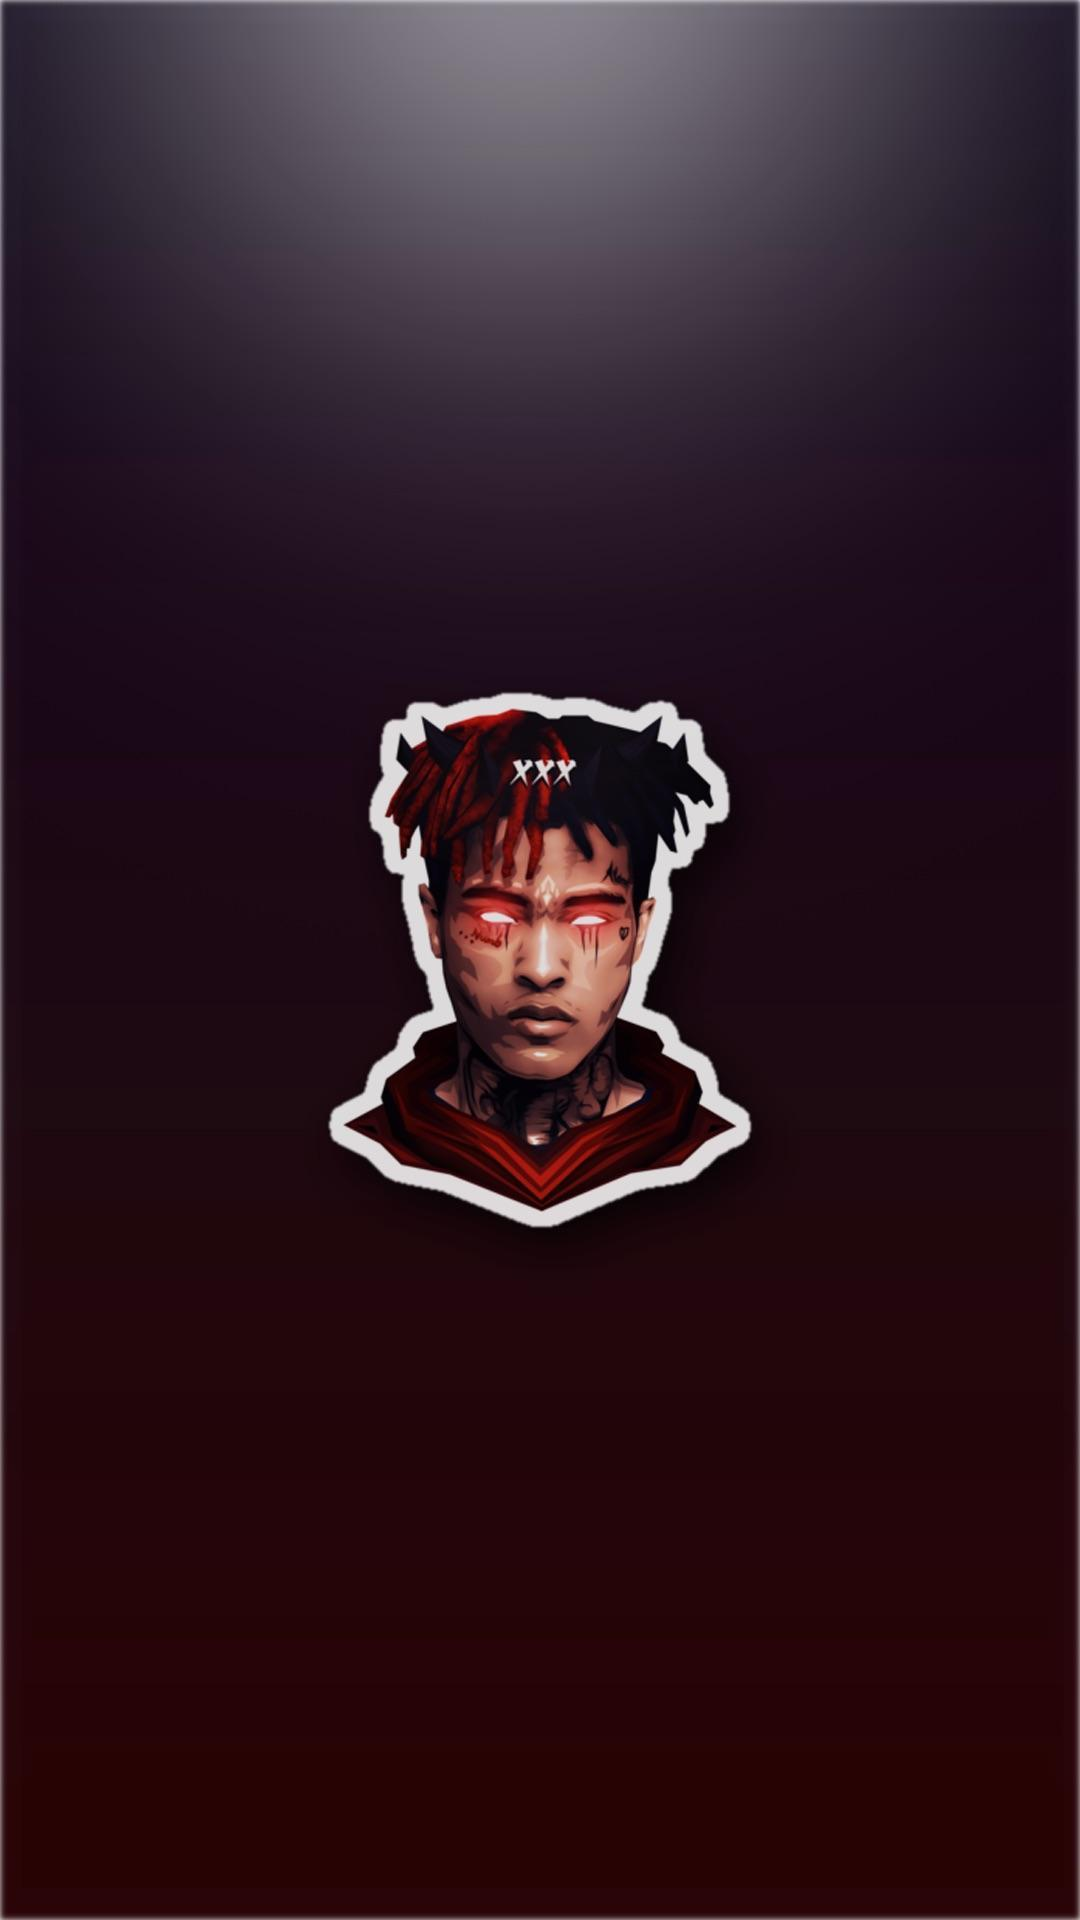 Xxxtentacion Wallpaper Hd Related Keywords Suggestions 1080x1920